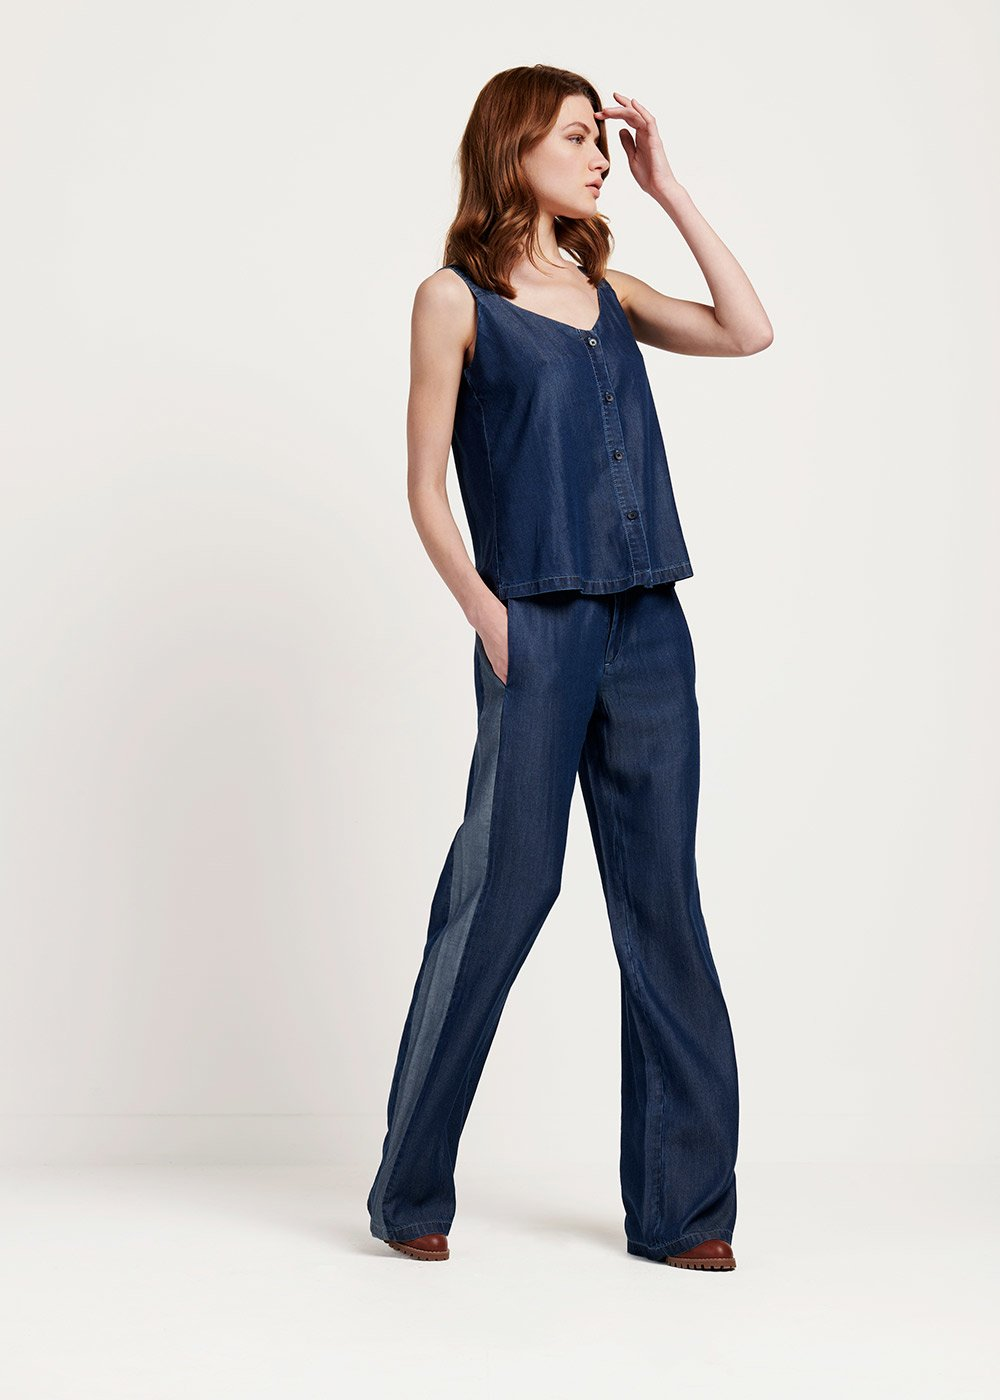 Parky trousers with wide leg and contrasting band - Dark Denim - Woman